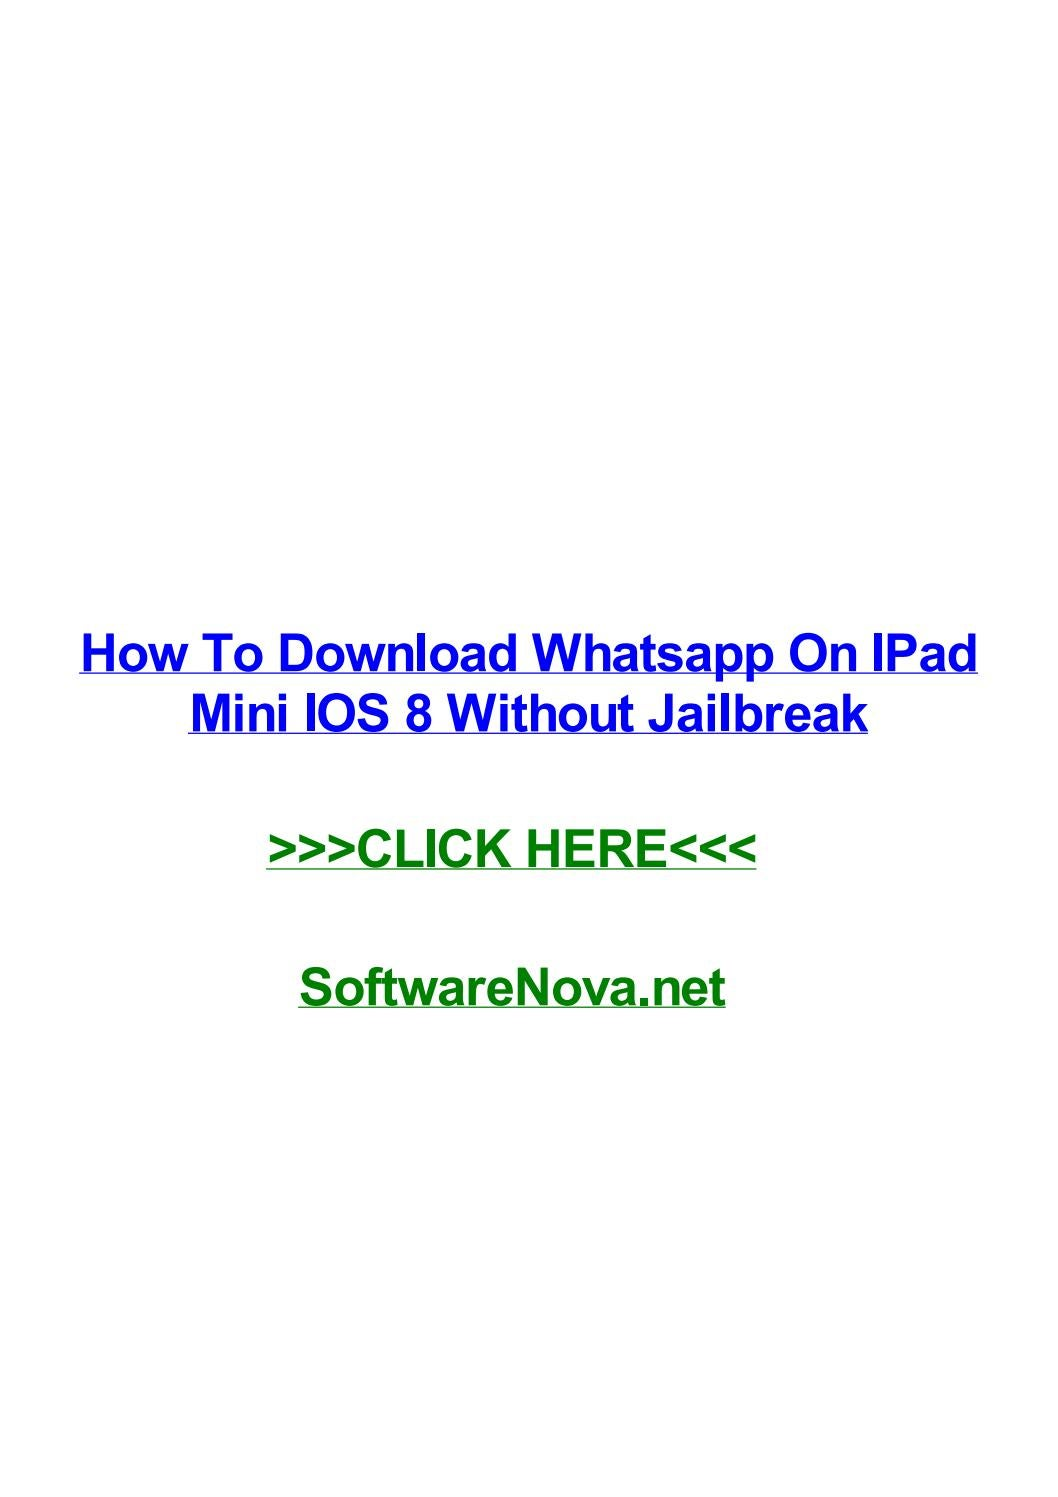 How to download whatsapp on ipad mini ios 8 without